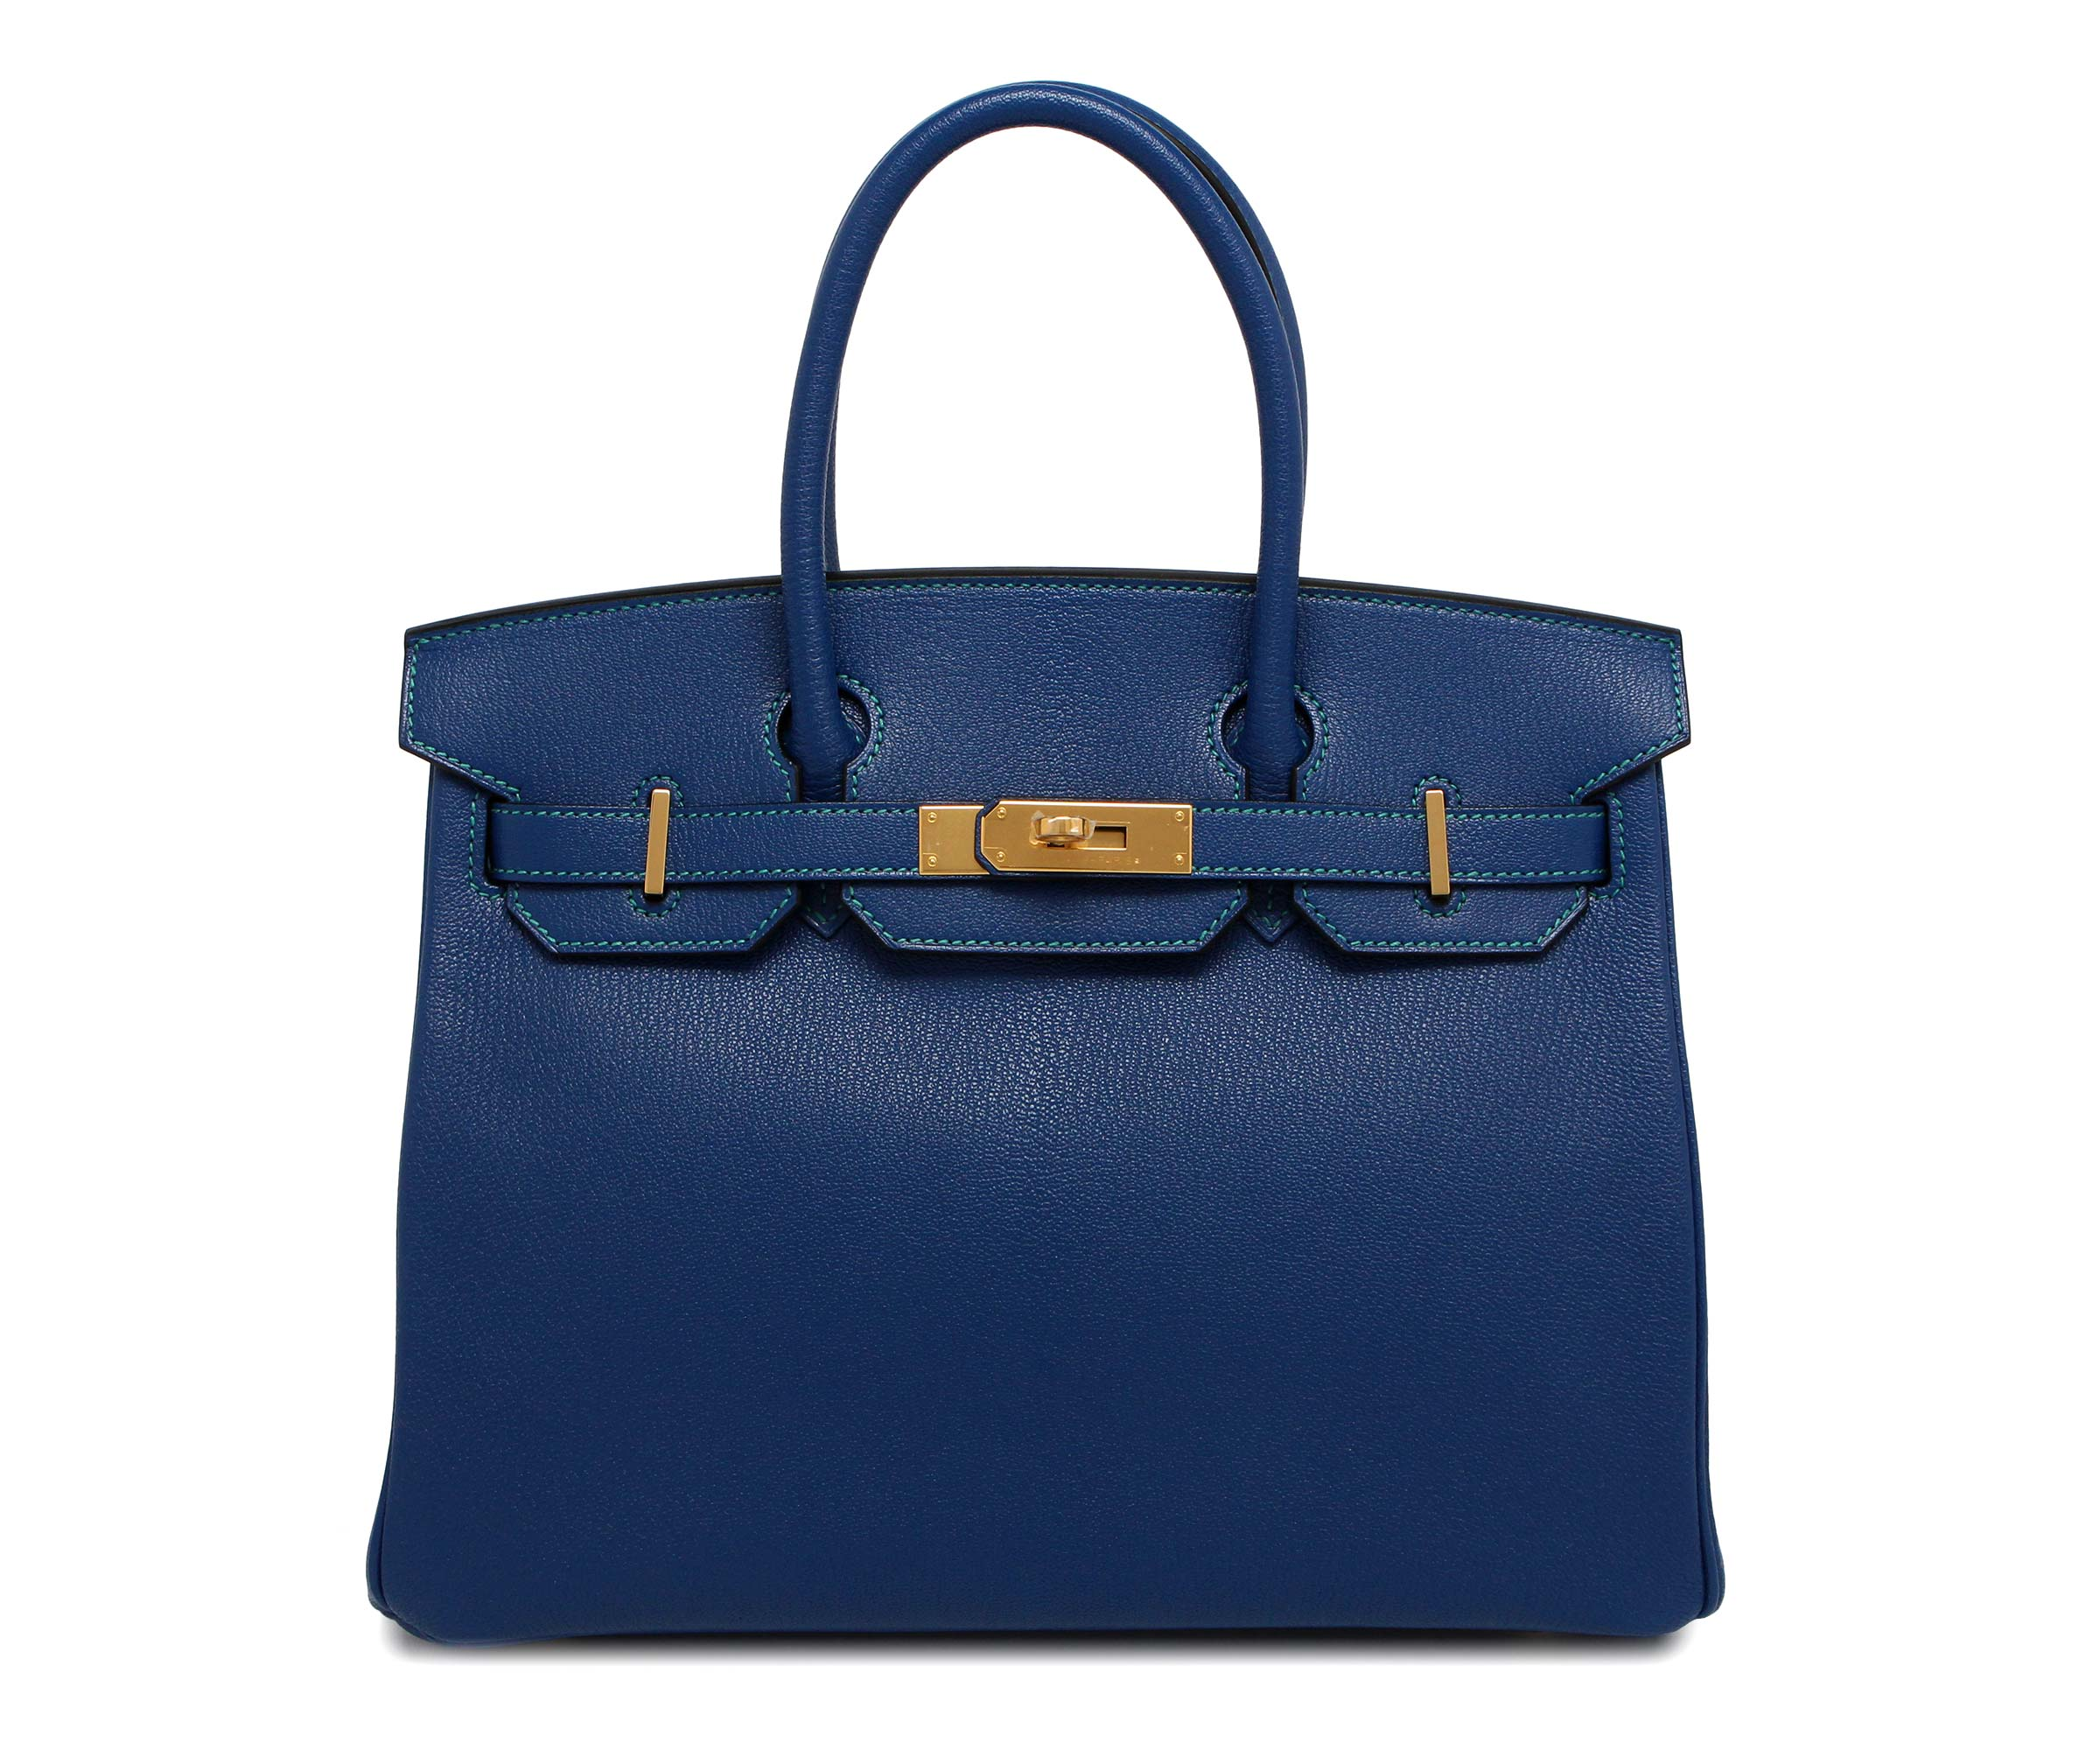 Hermes Birkin Electric Blue